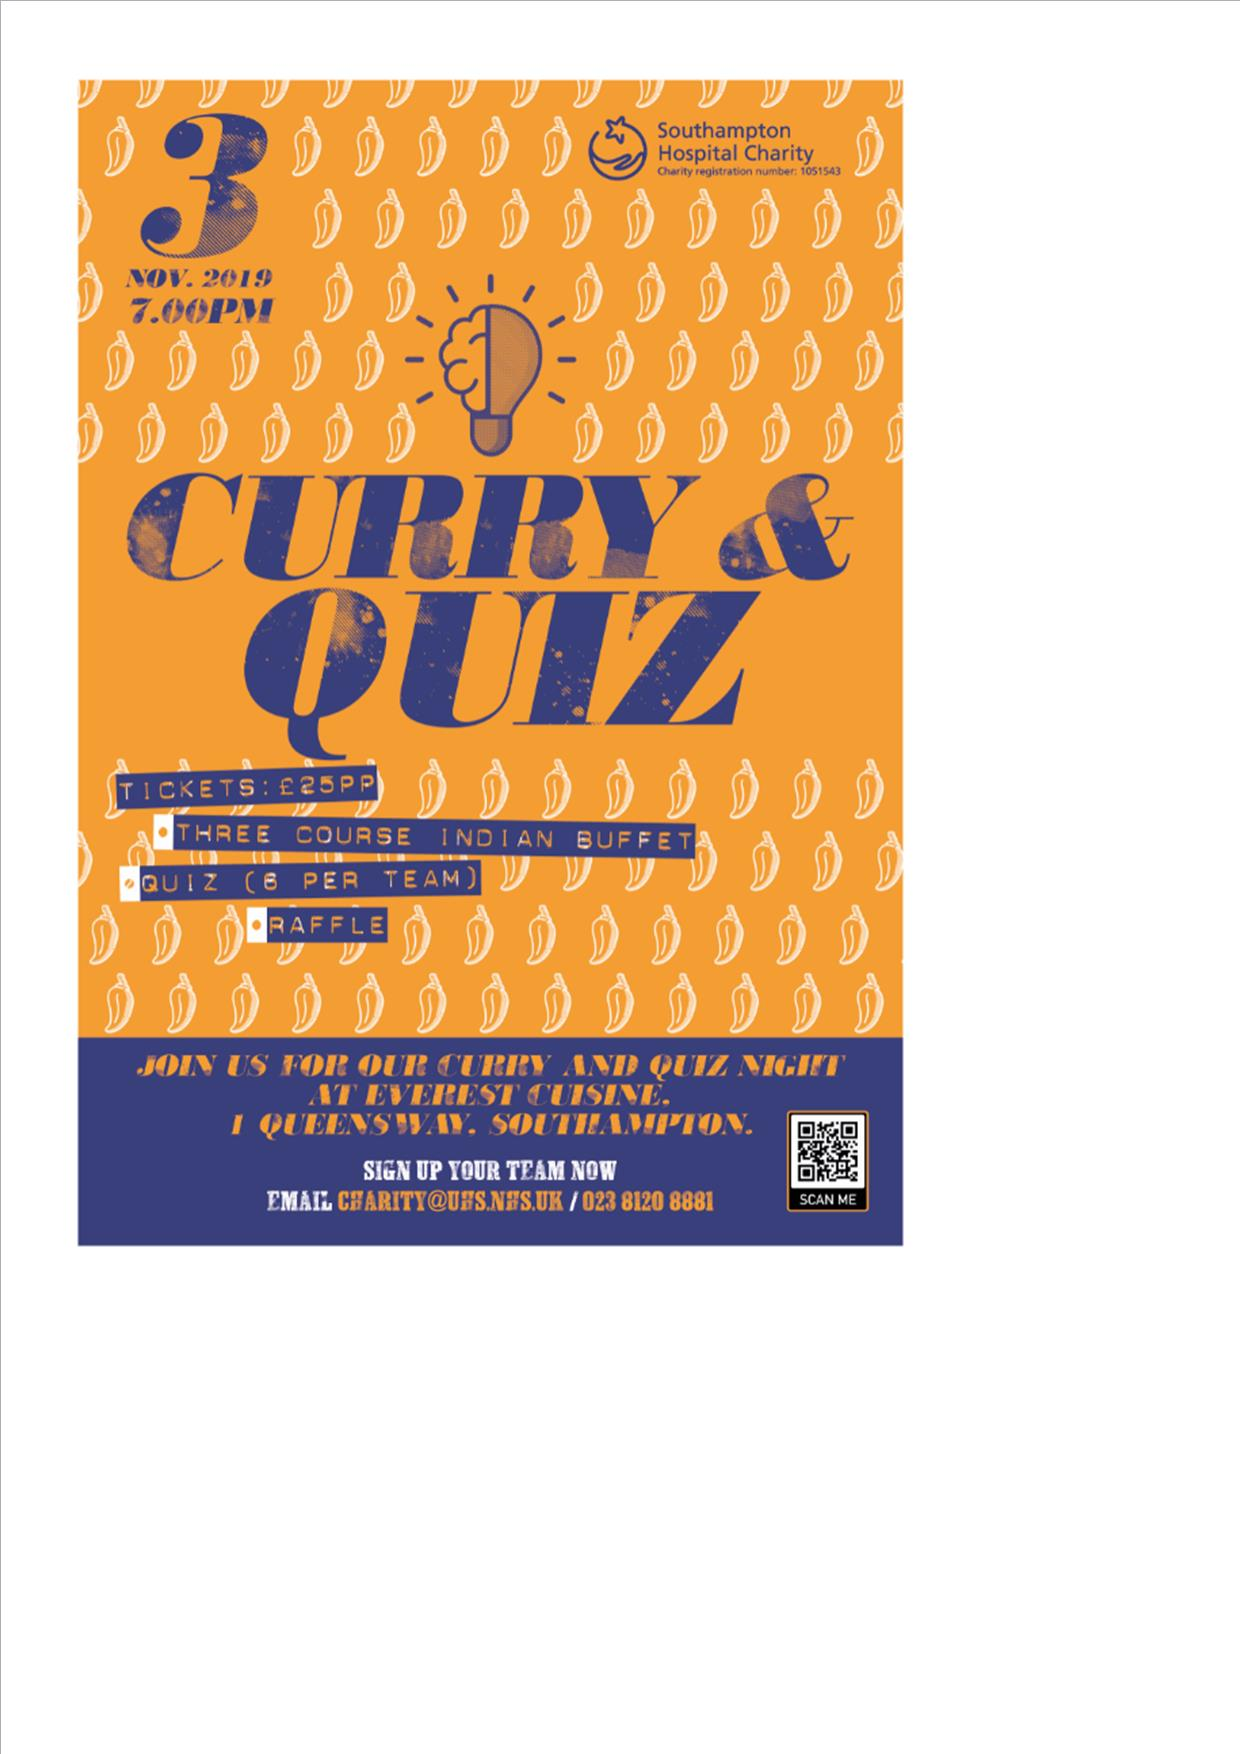 Curry and Quiz for Southampton Hospital Charity